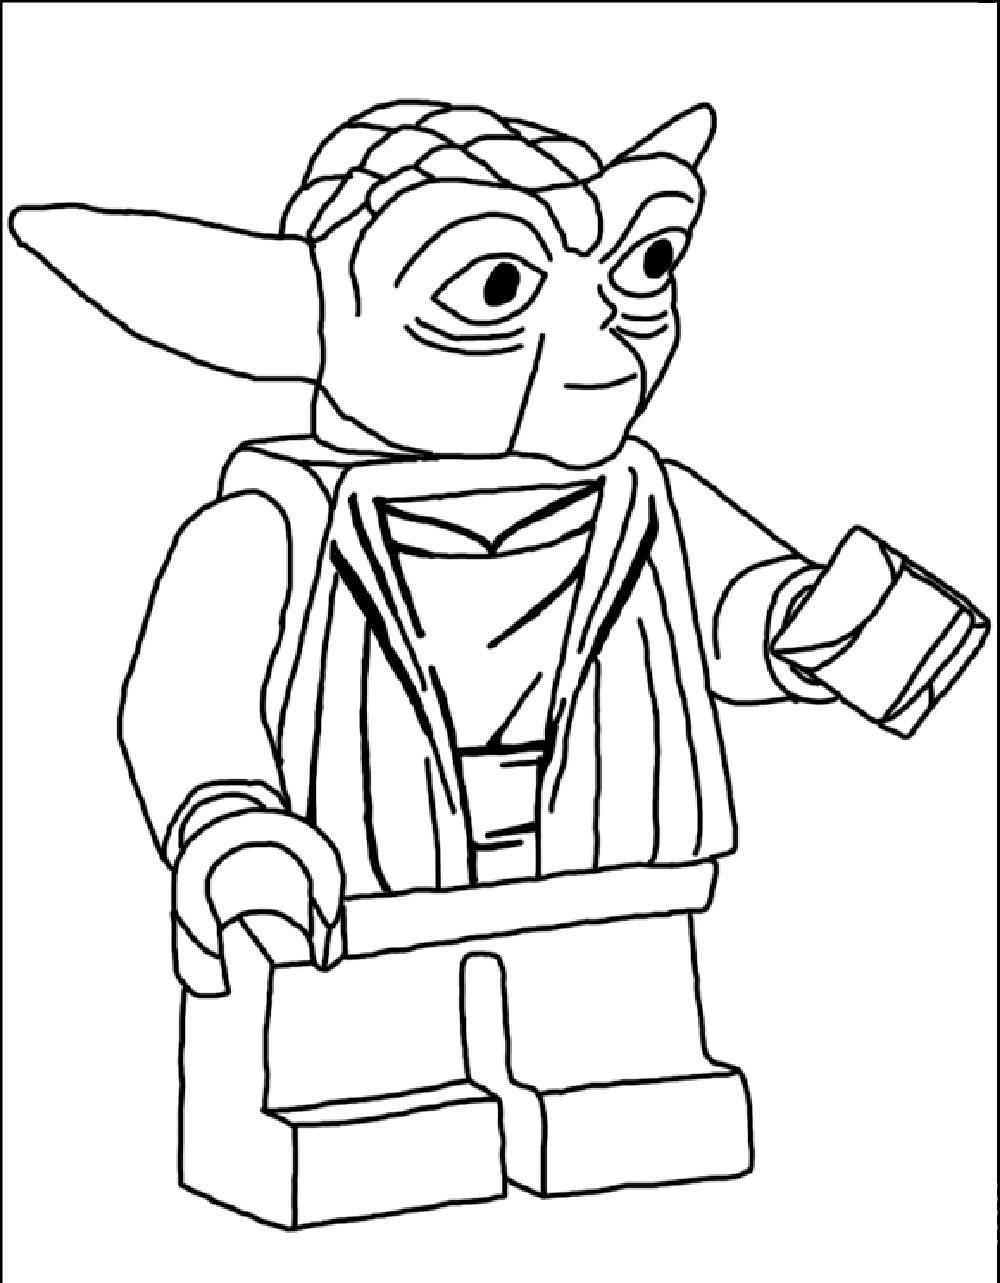 lego coloring sheets lego star wars coloring pages to download and print for free coloring lego sheets